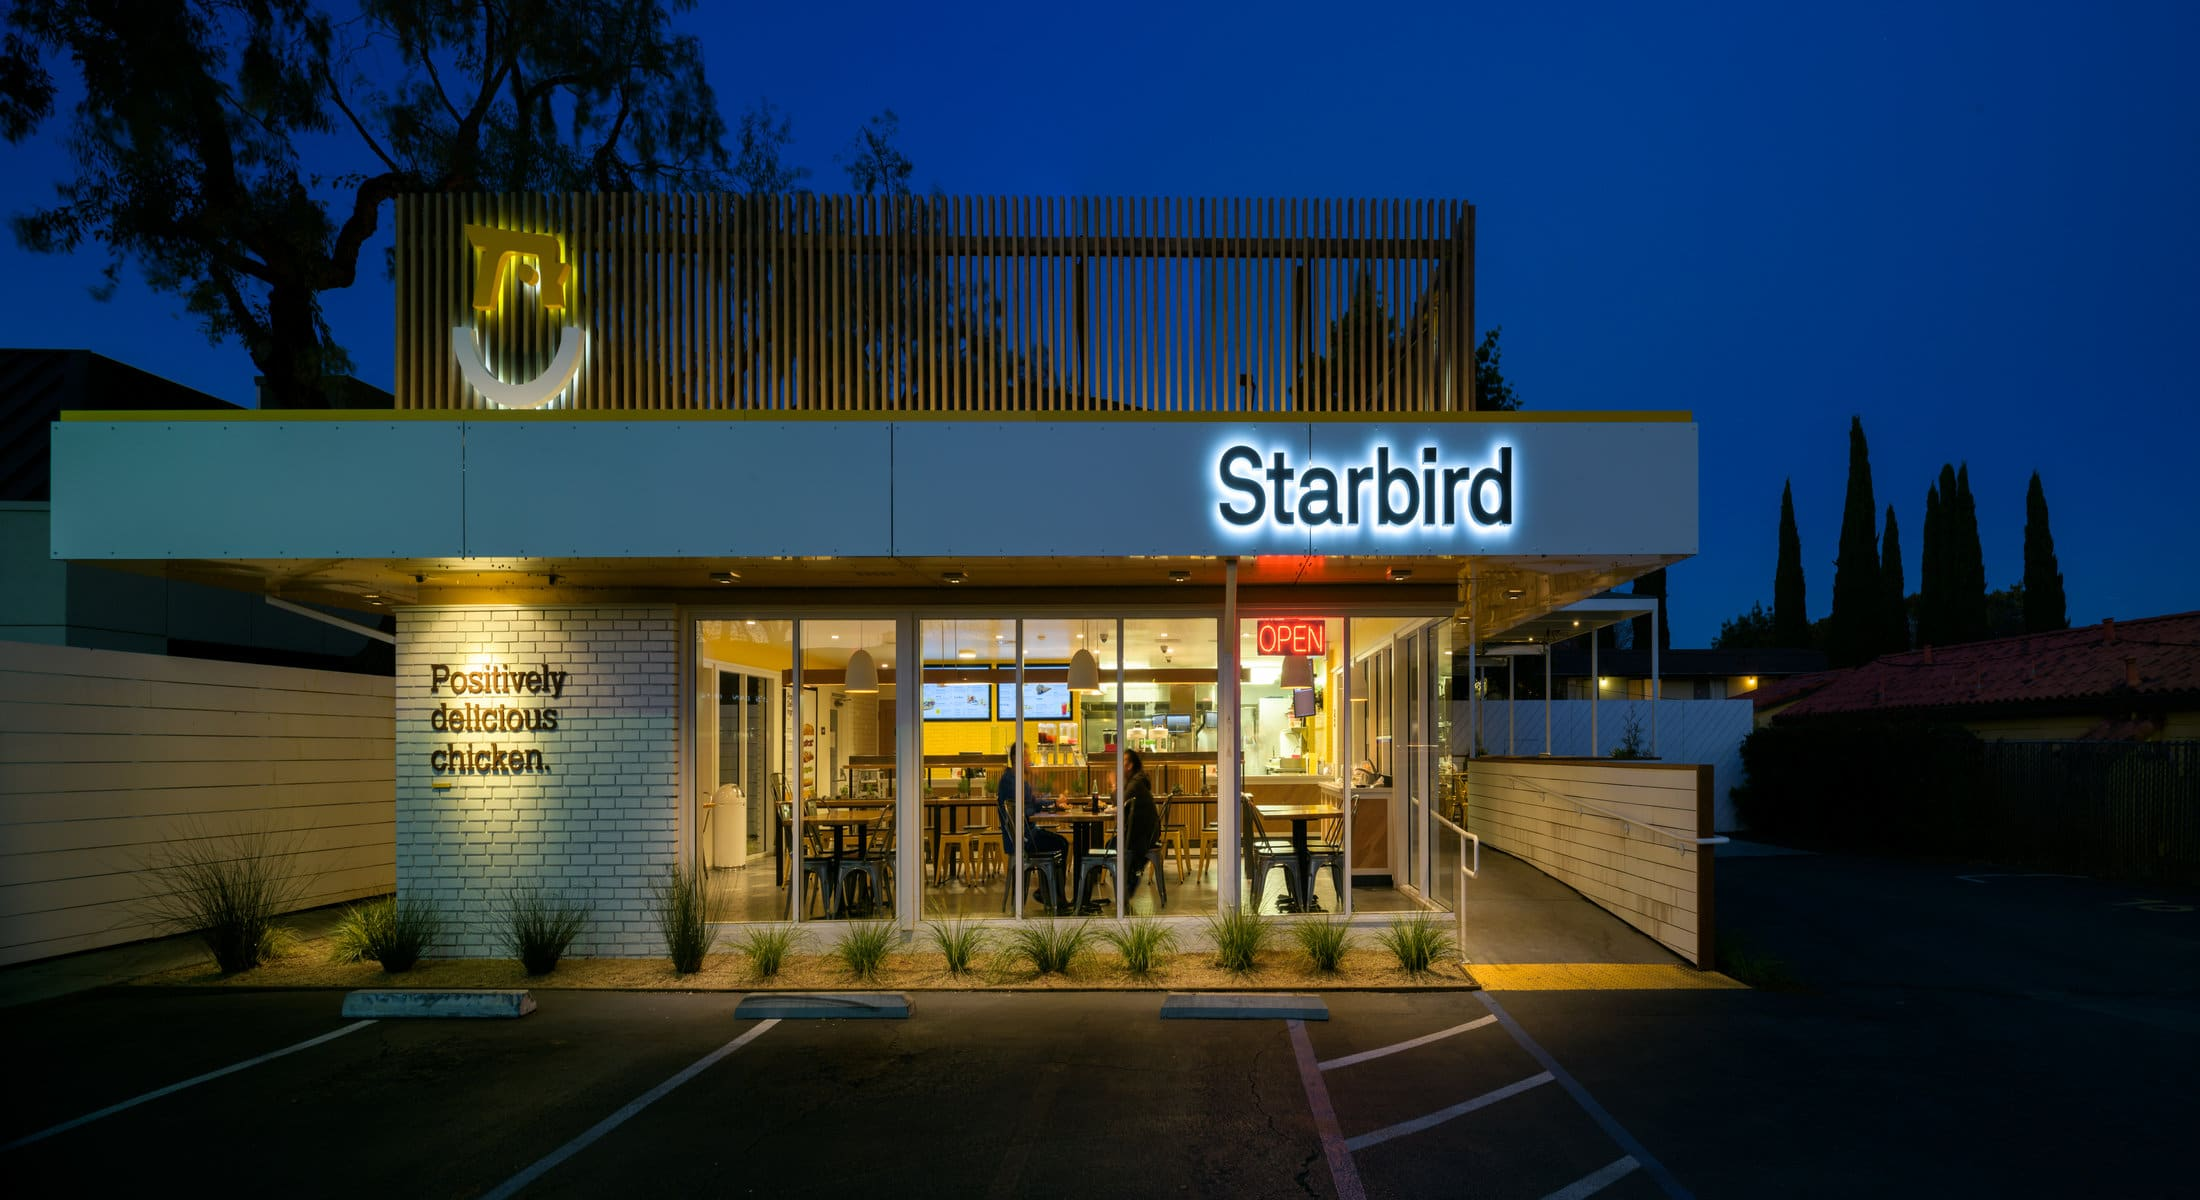 rsz_21064_starbird_chicken_restaurant_sunnyvale_commercial_architecture_photography-pano